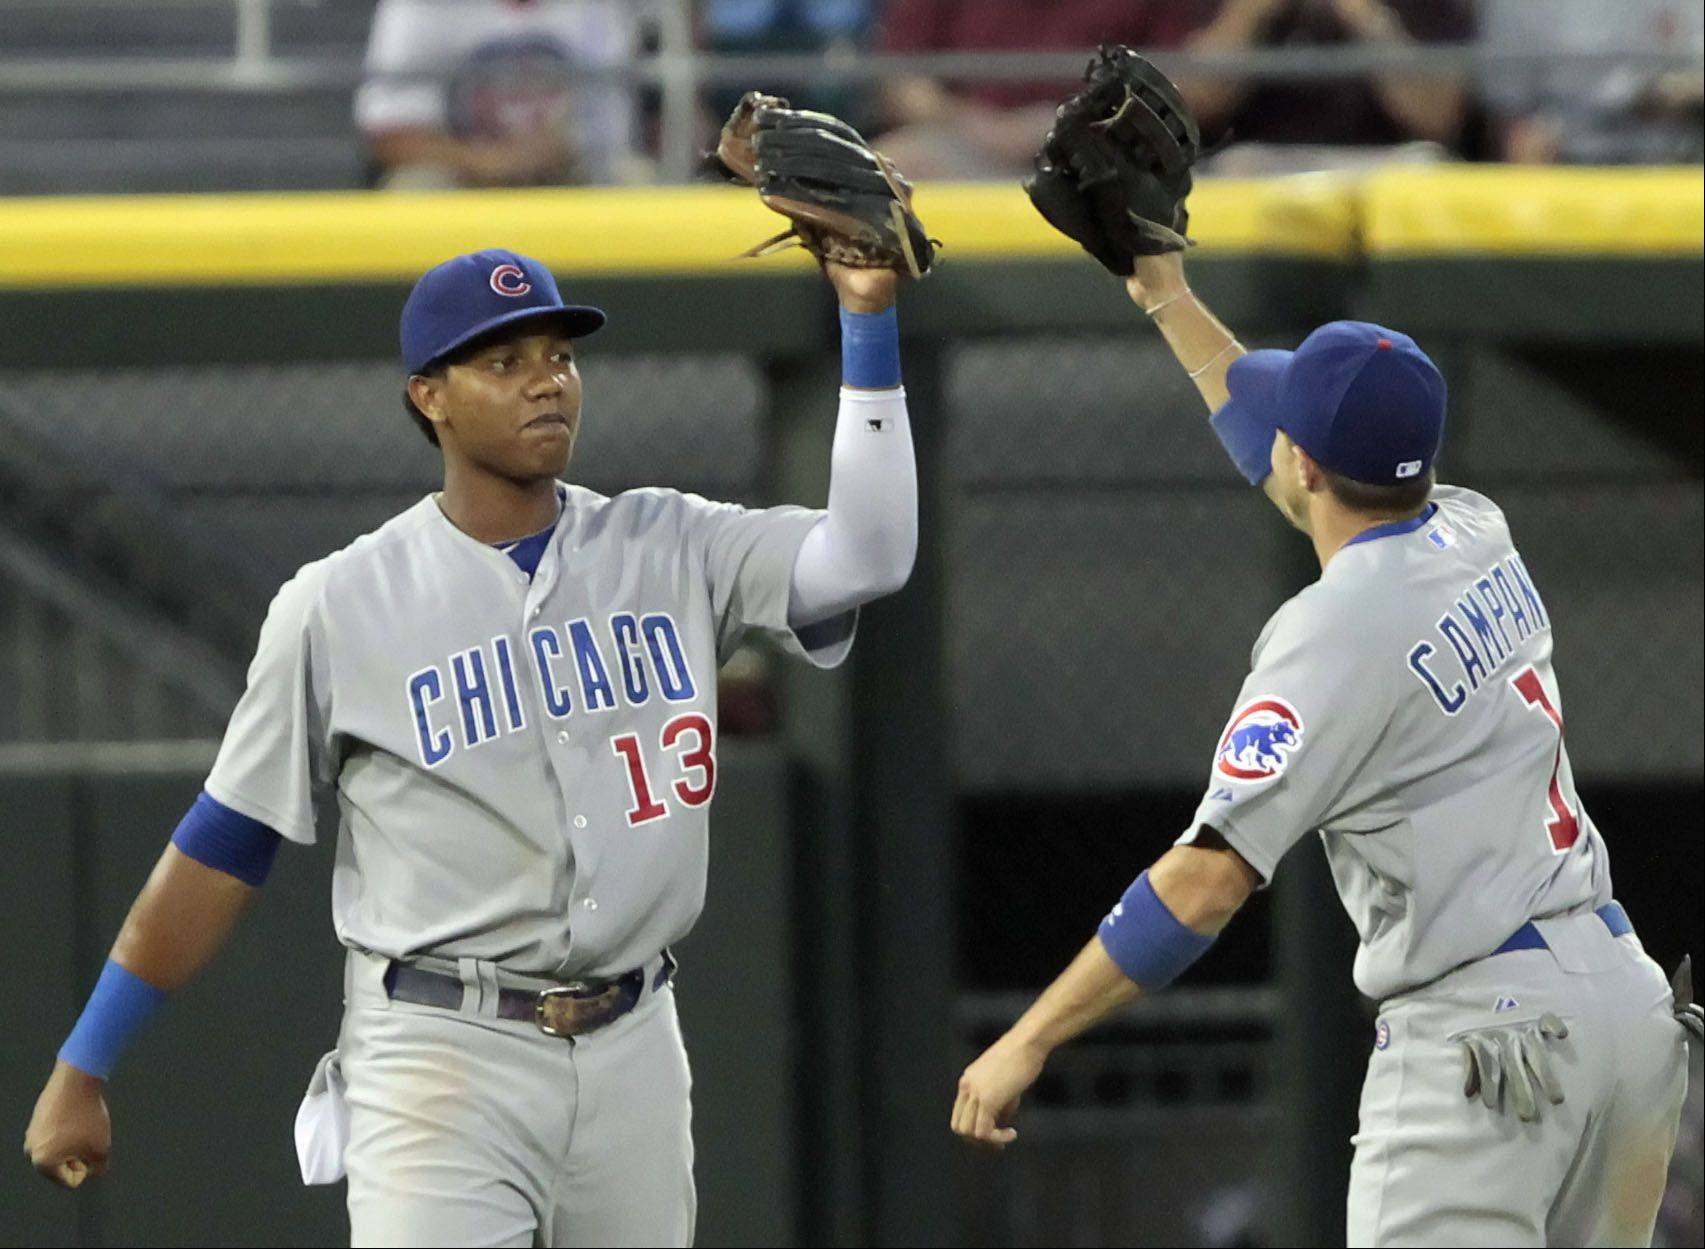 Chicago Cubs' Starlin Castro get a high five from Chicago Cubs' Tony Campana after Castro made a barehand catch.